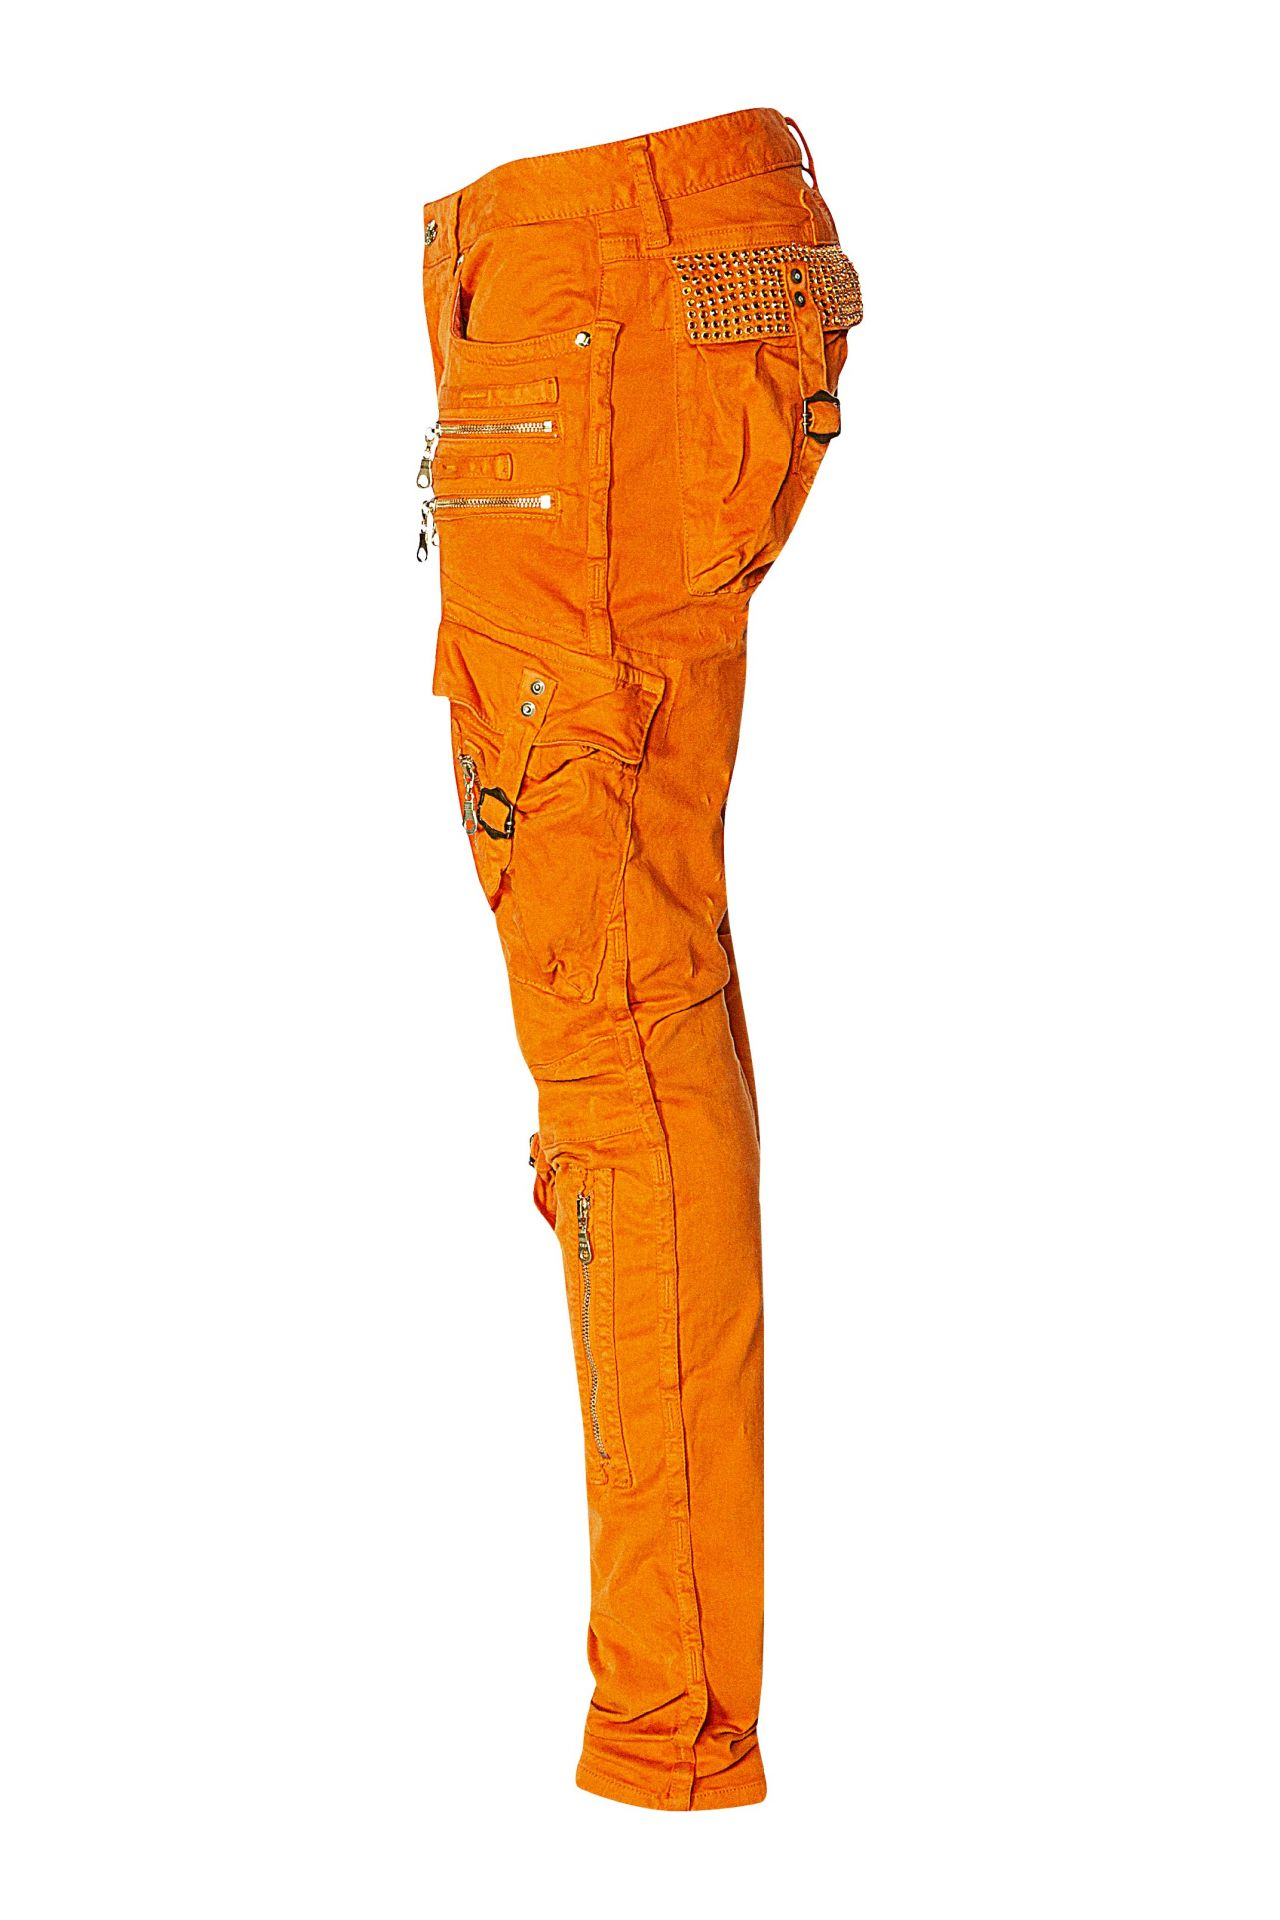 MILITARY CARGO IN SODA ORANGE WITH CRYSTALS